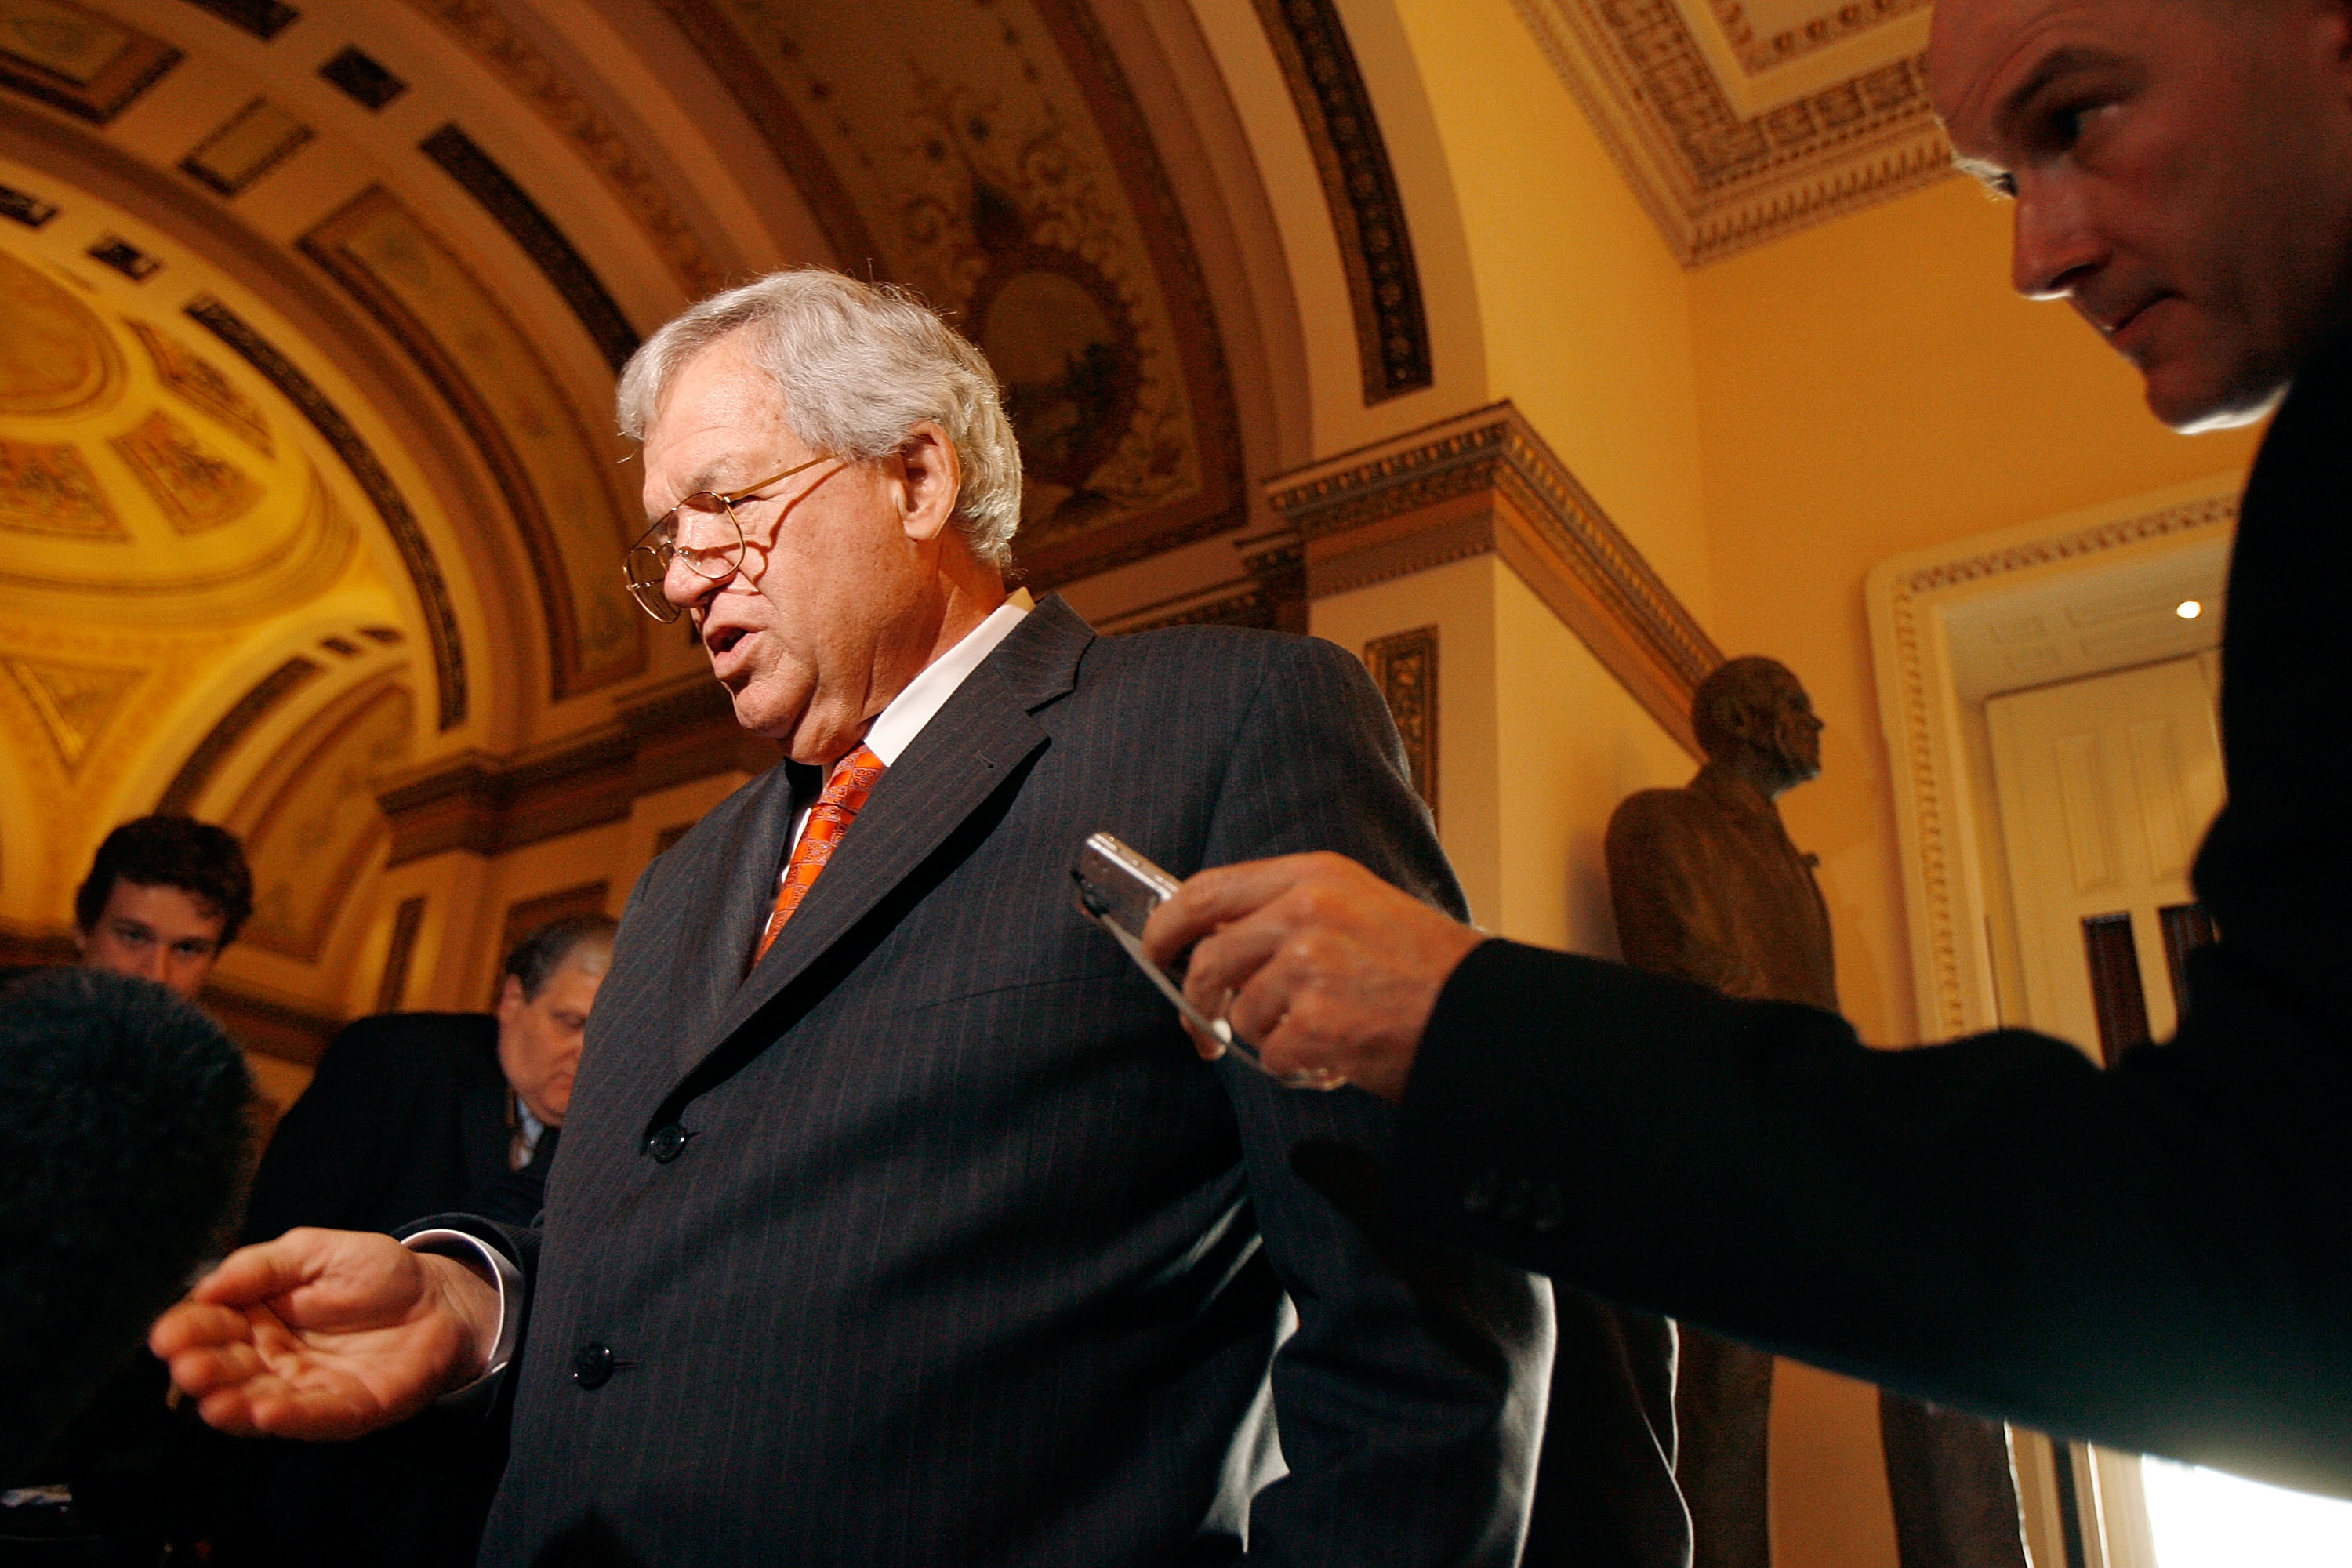 Former Speaker of the House Dennis Hastert (R-IL) speaks with reporters after delivering his farewell address to Congress November 15, 2007 in Washington, DC. Hastert was the longest-serving Republican speaker in U.S. history, and the first speaker since 1955 to remain in Congress after losing the speakership.  (Photo by Chip Somodevilla/Getty Images)